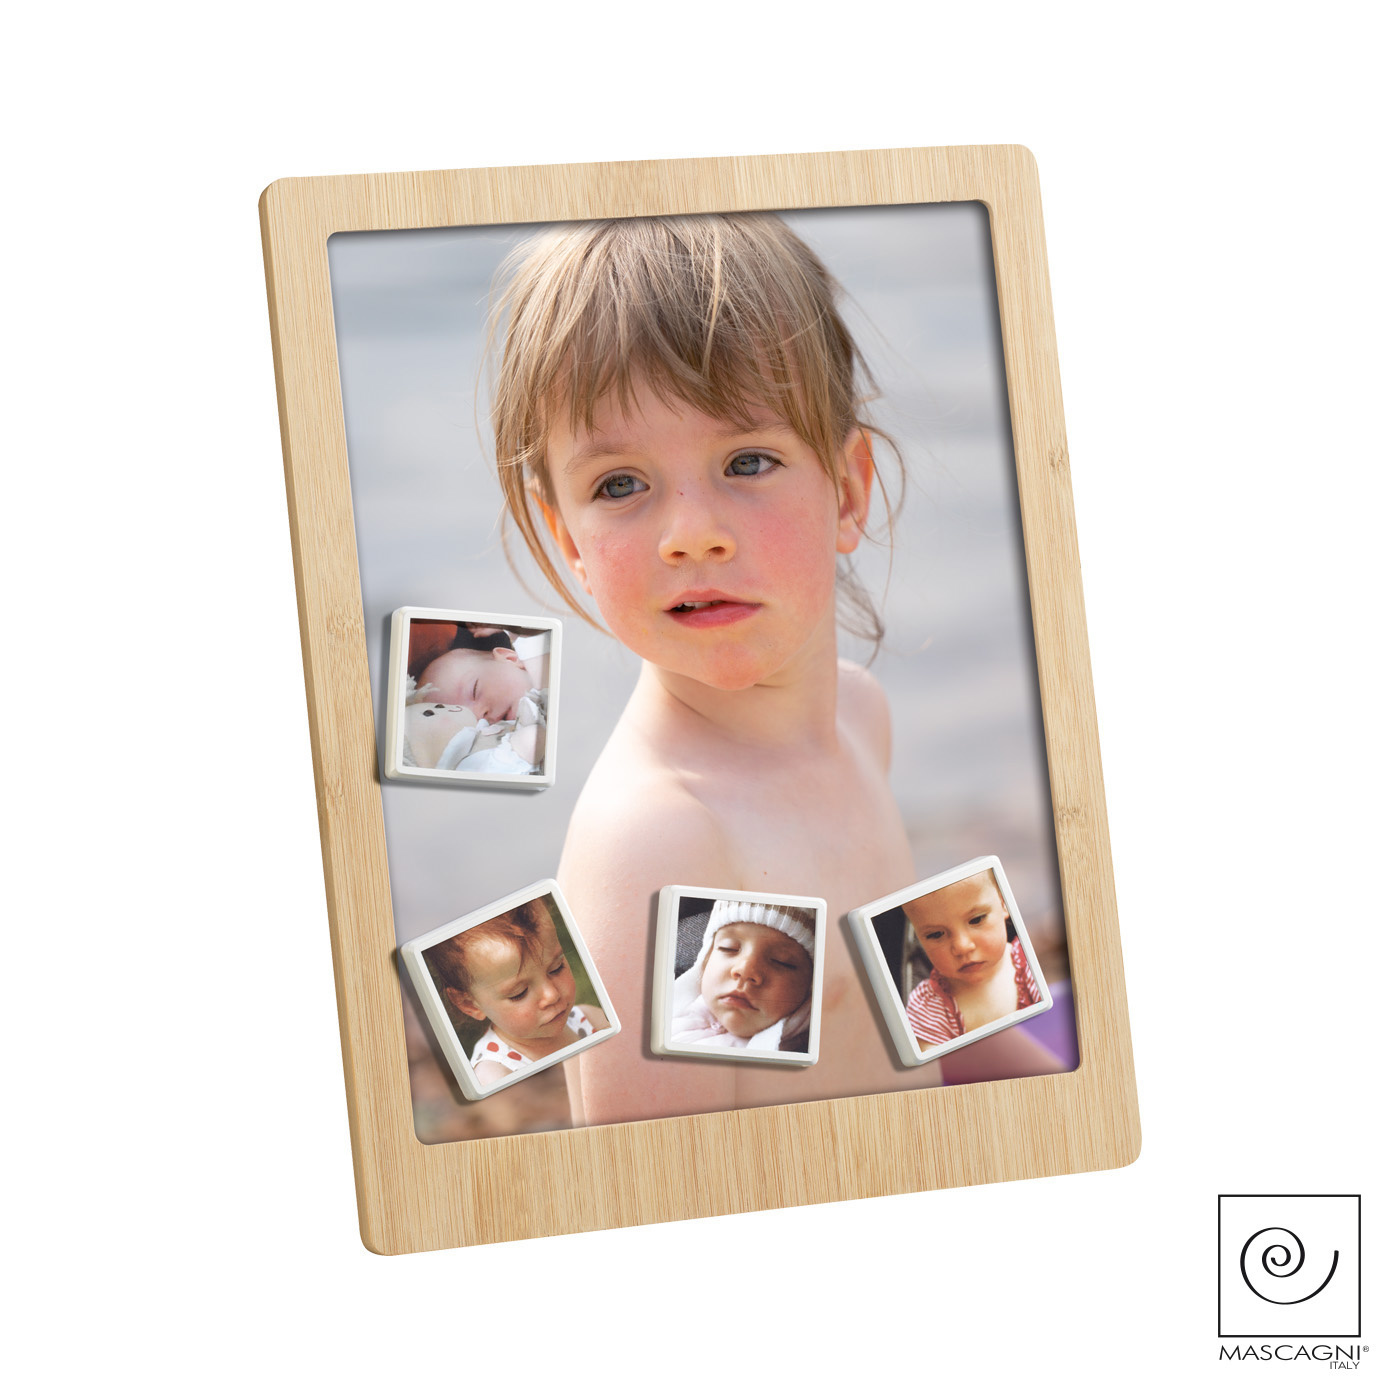 Art Mascagni A941 PHOTO FRAME 20X25 WITH 5 AIMANT